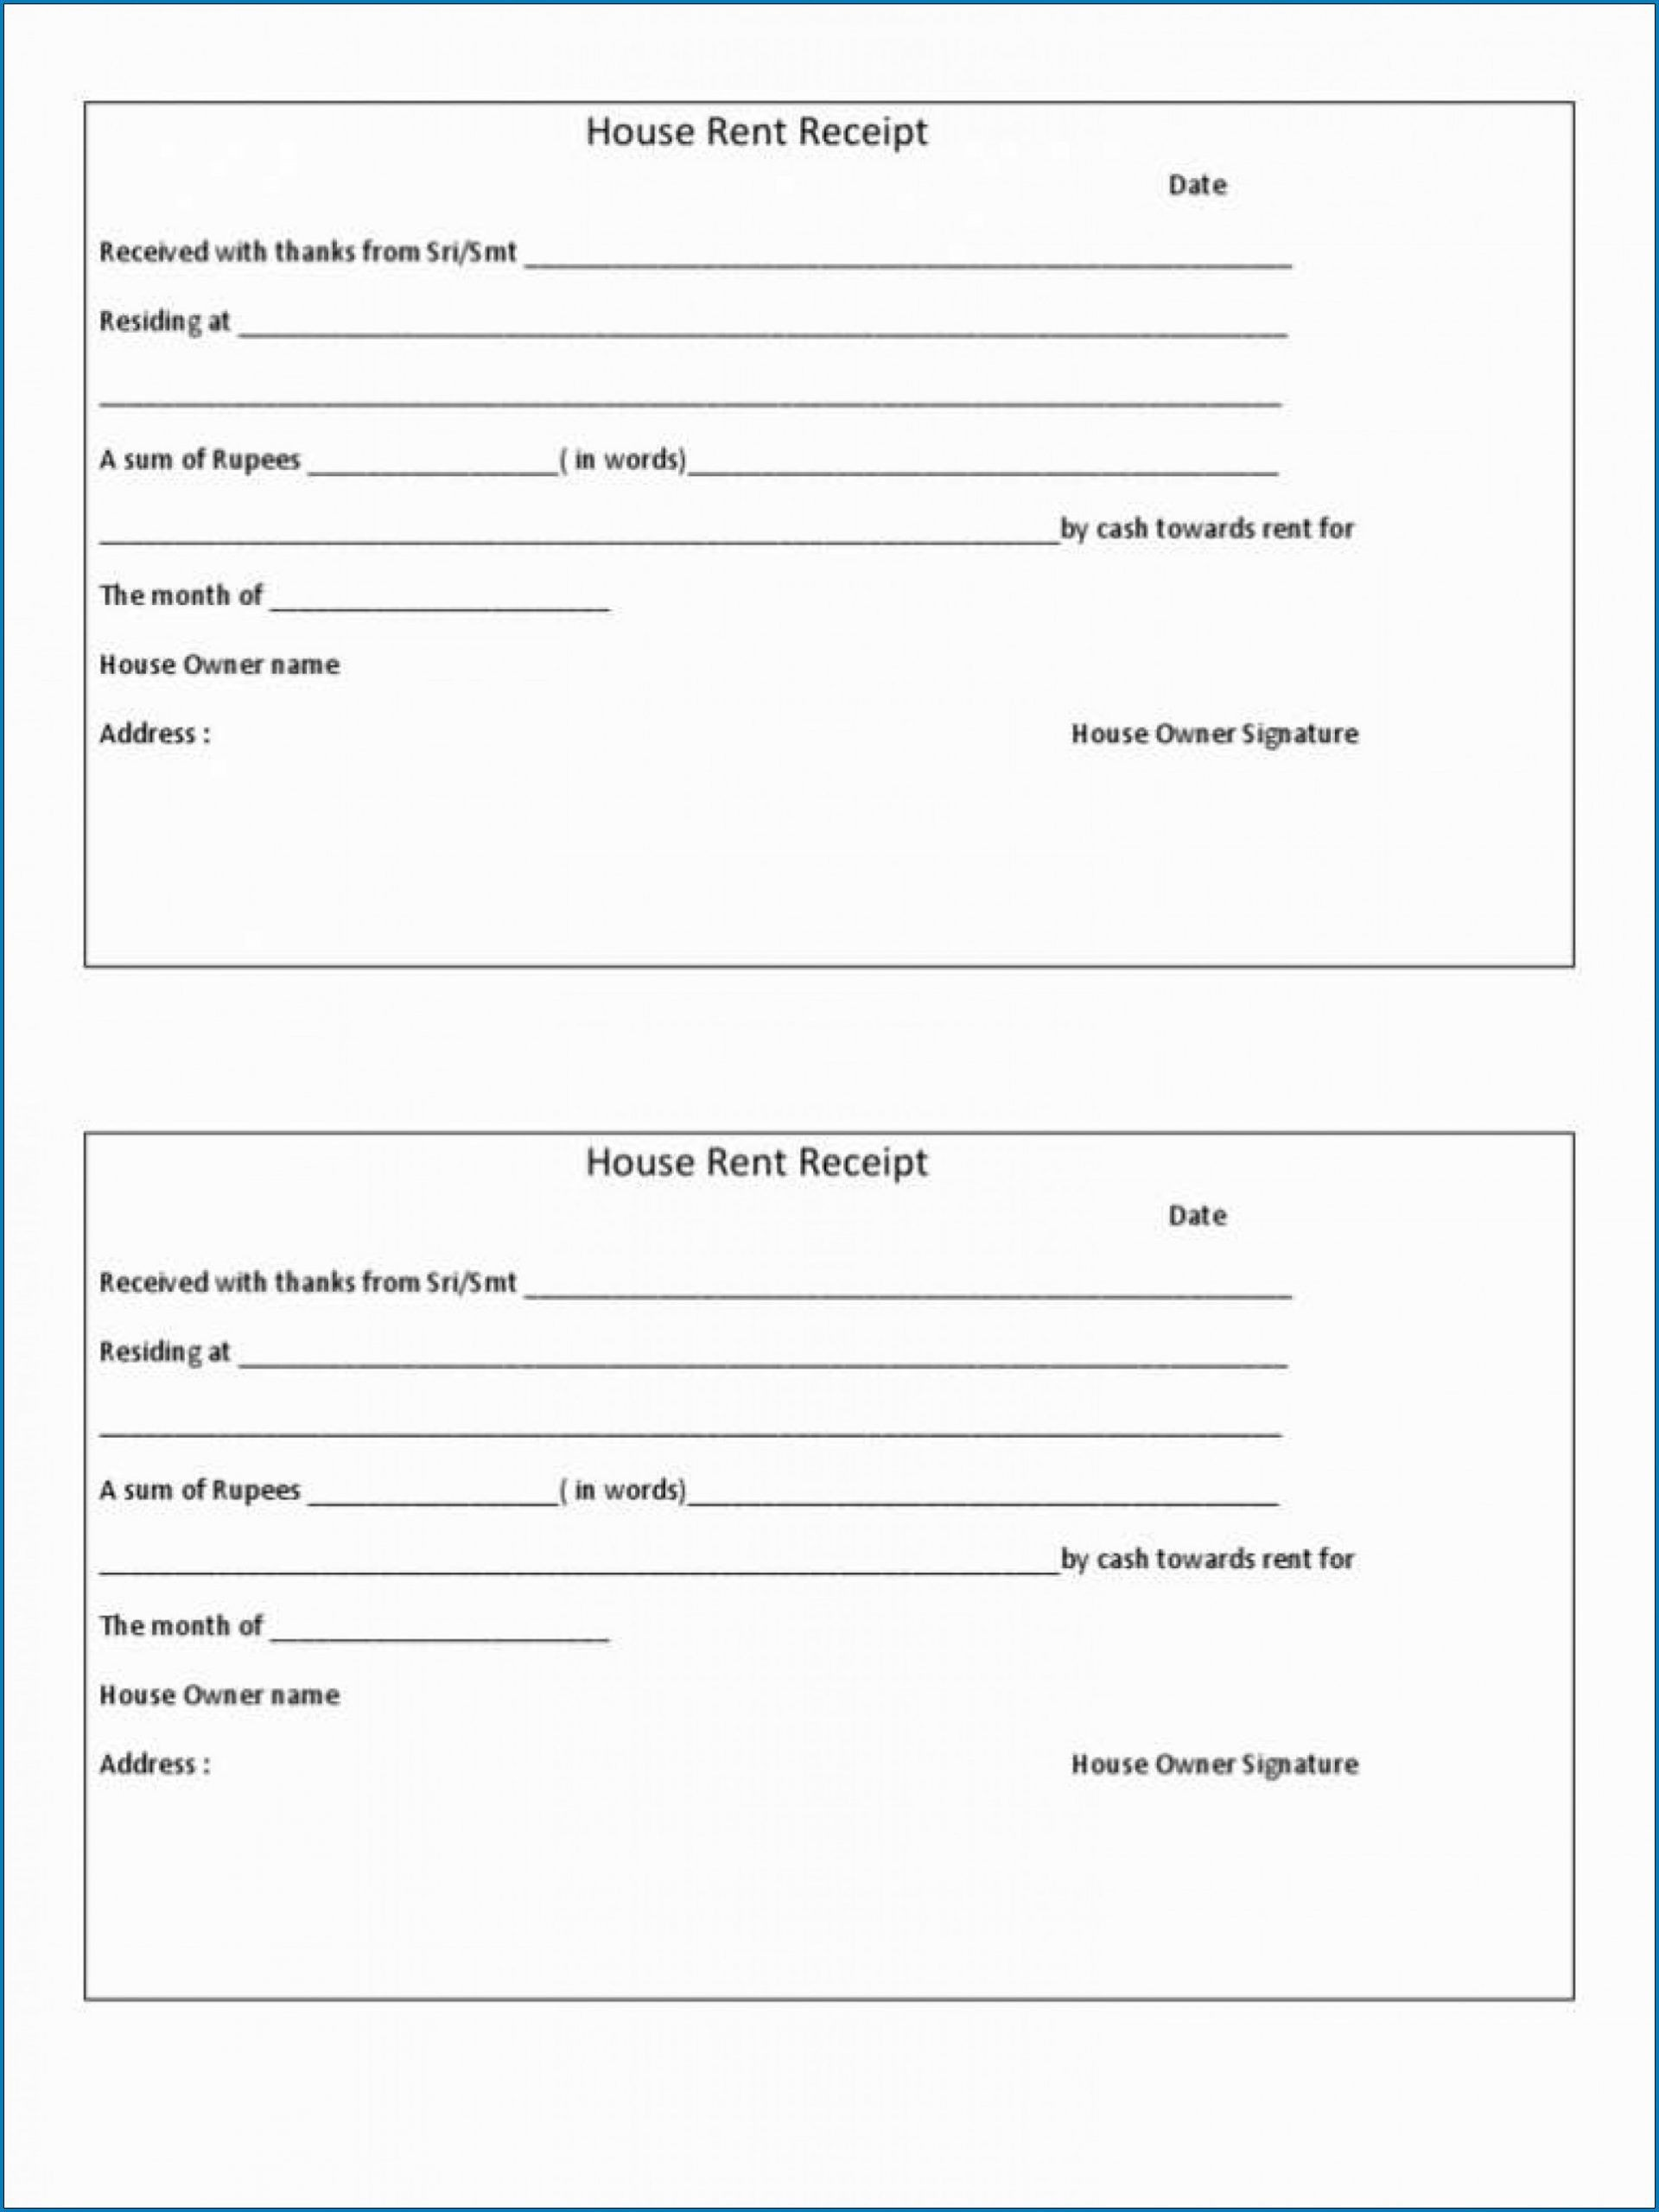 009 Stirring House Rent Receipt Sample Doc Design  Template Word Document Free Download Format For Income Tax1920